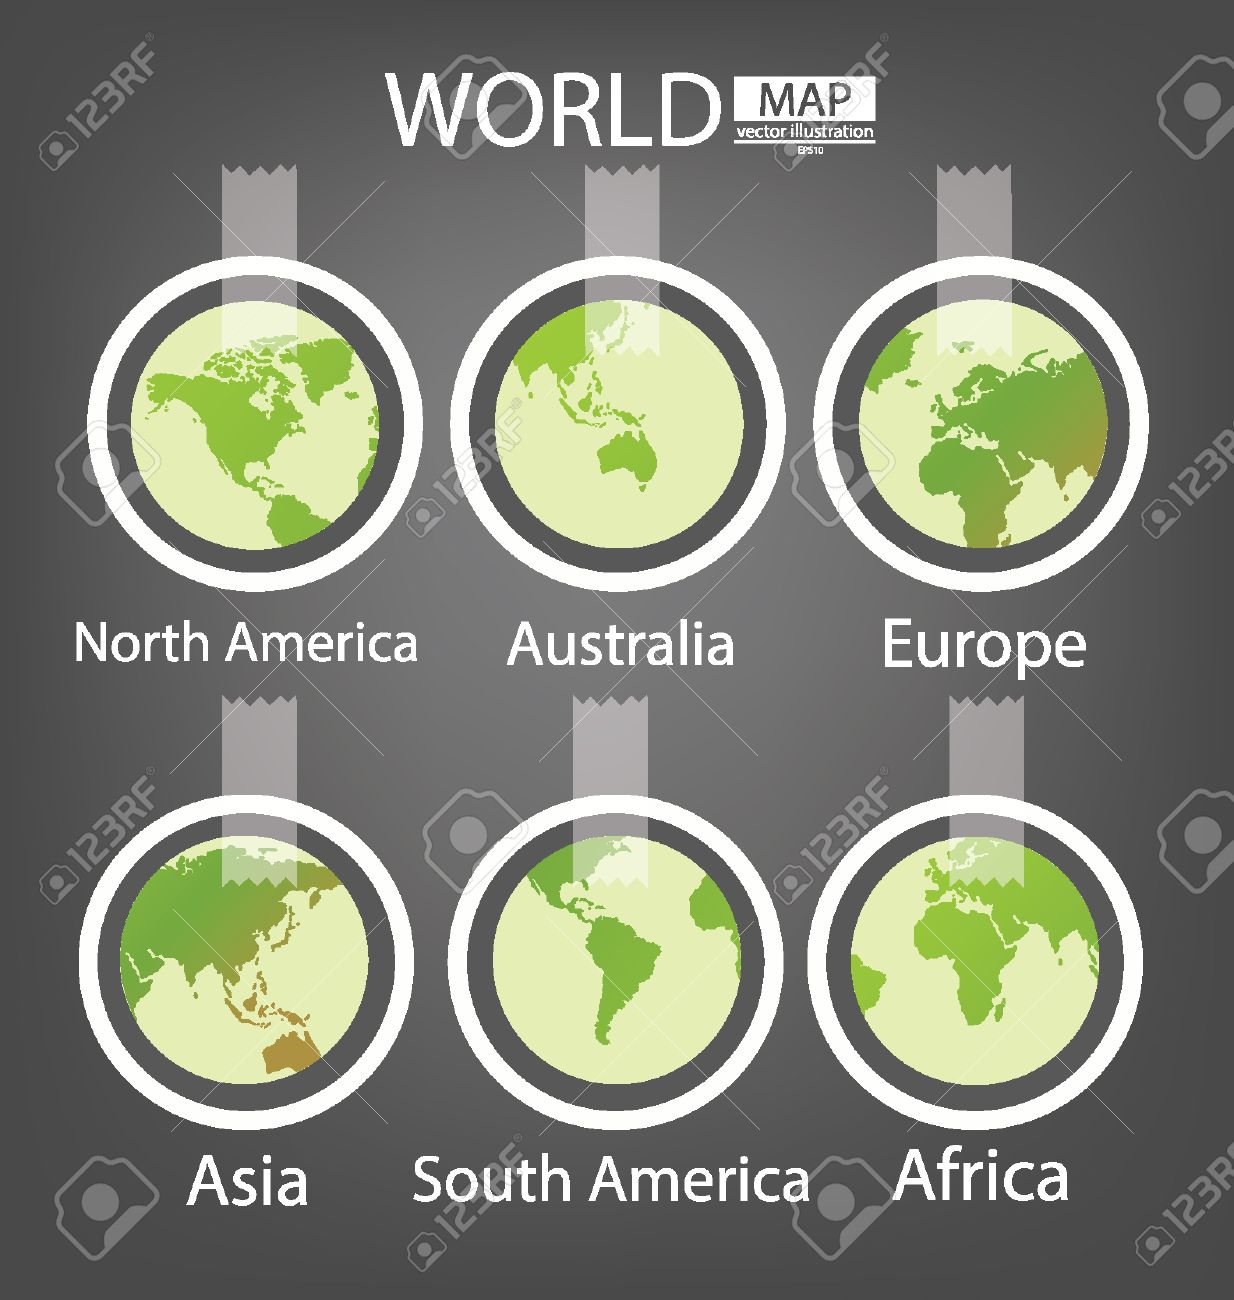 Sticker africa asia australia europe north america royalty world map vector illustration sticker africa asia australia europe north america south america gumiabroncs Choice Image